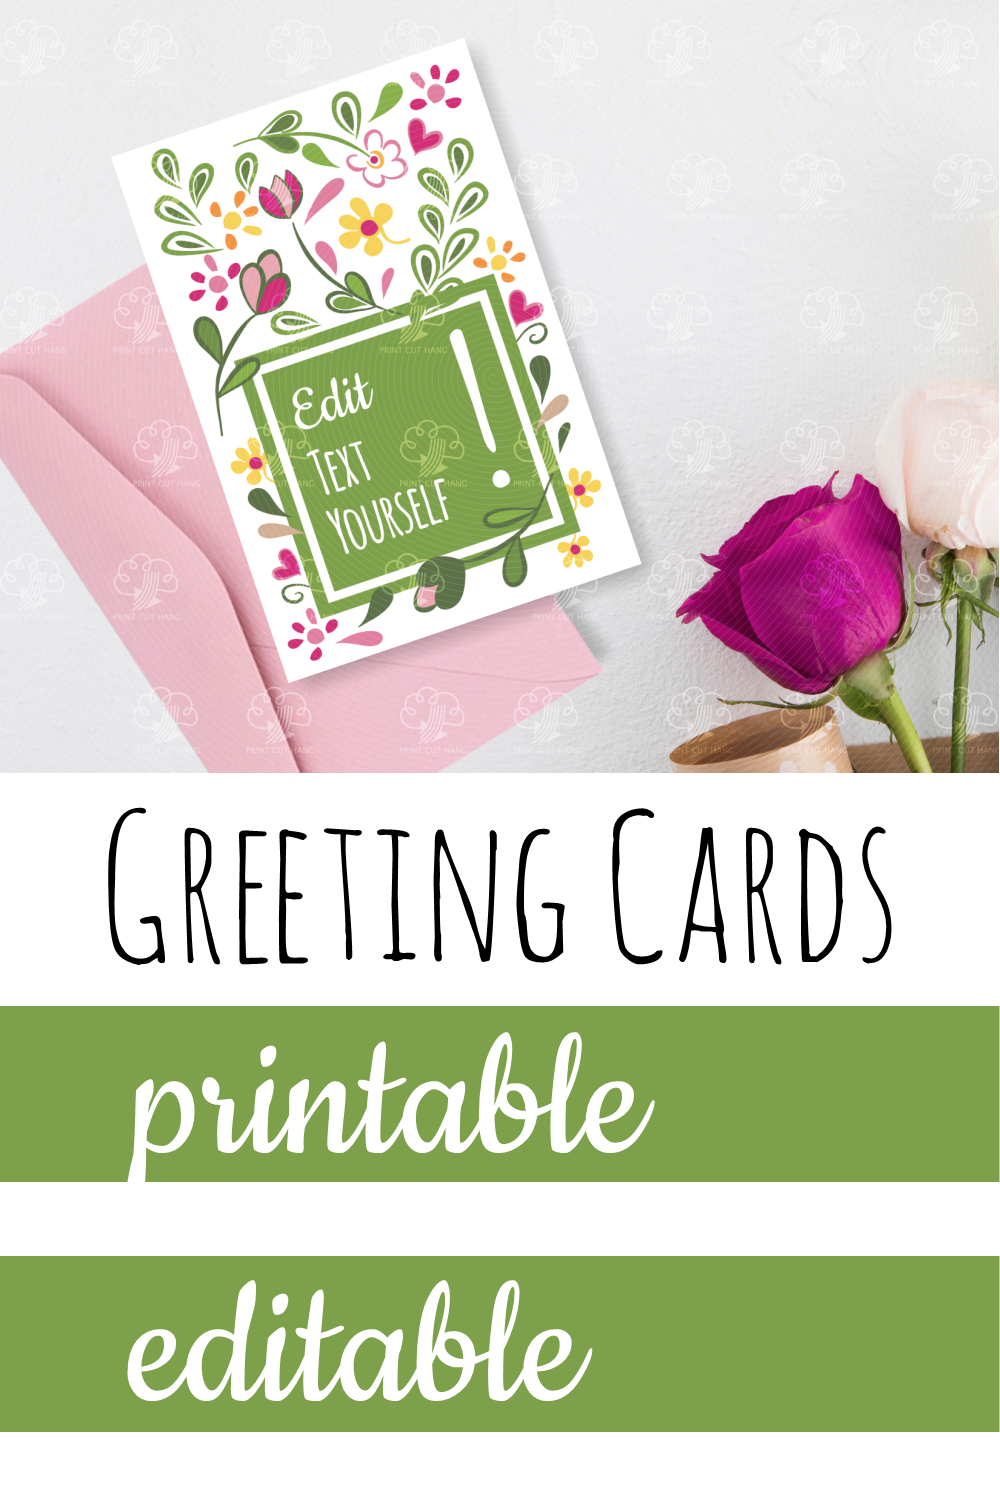 Customize Greeting Cards Yourself Floral Cards Design Floral Cards Card Design